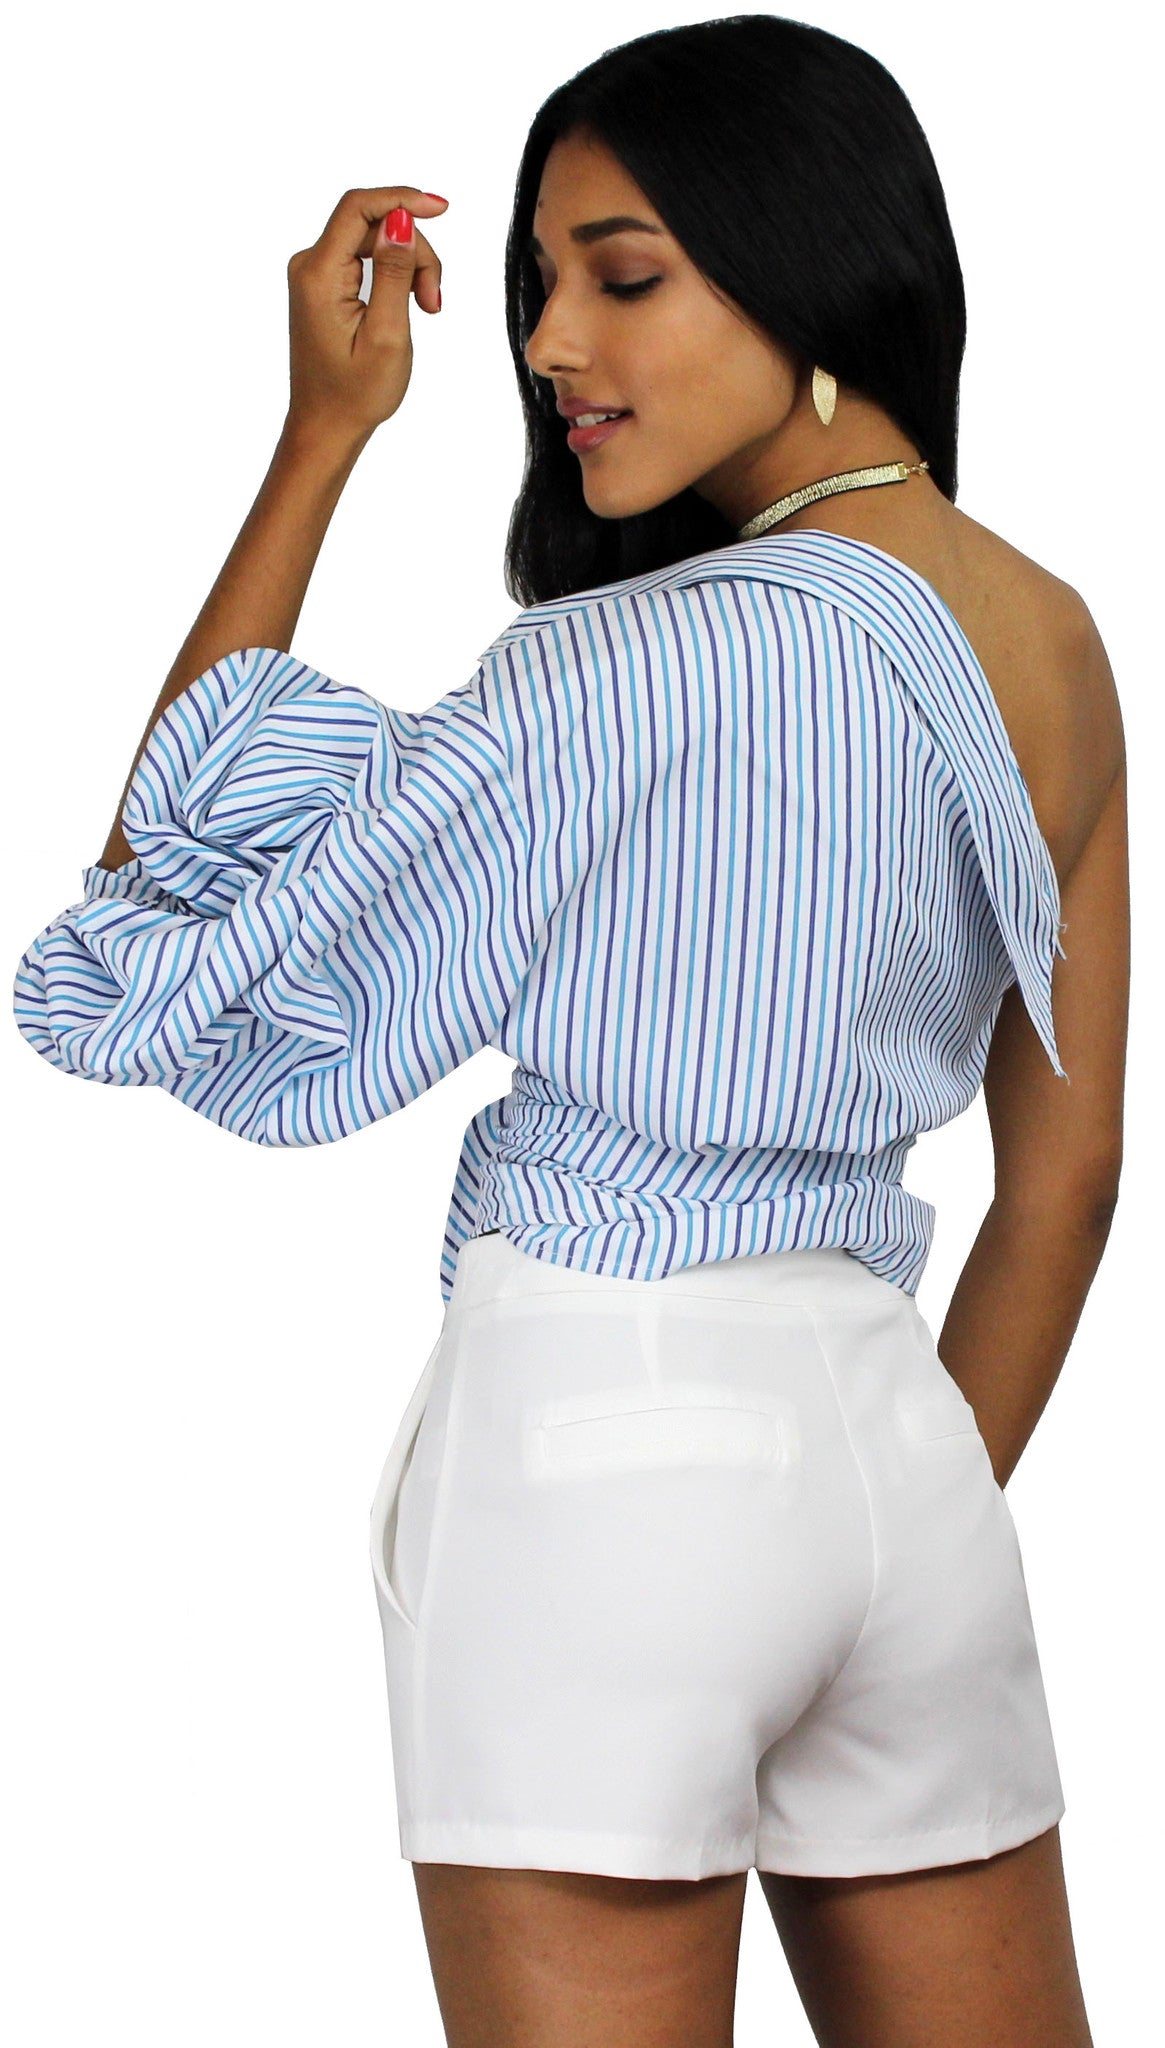 Always In Love White High-Waisted Shorts  Zil Boutique-4359